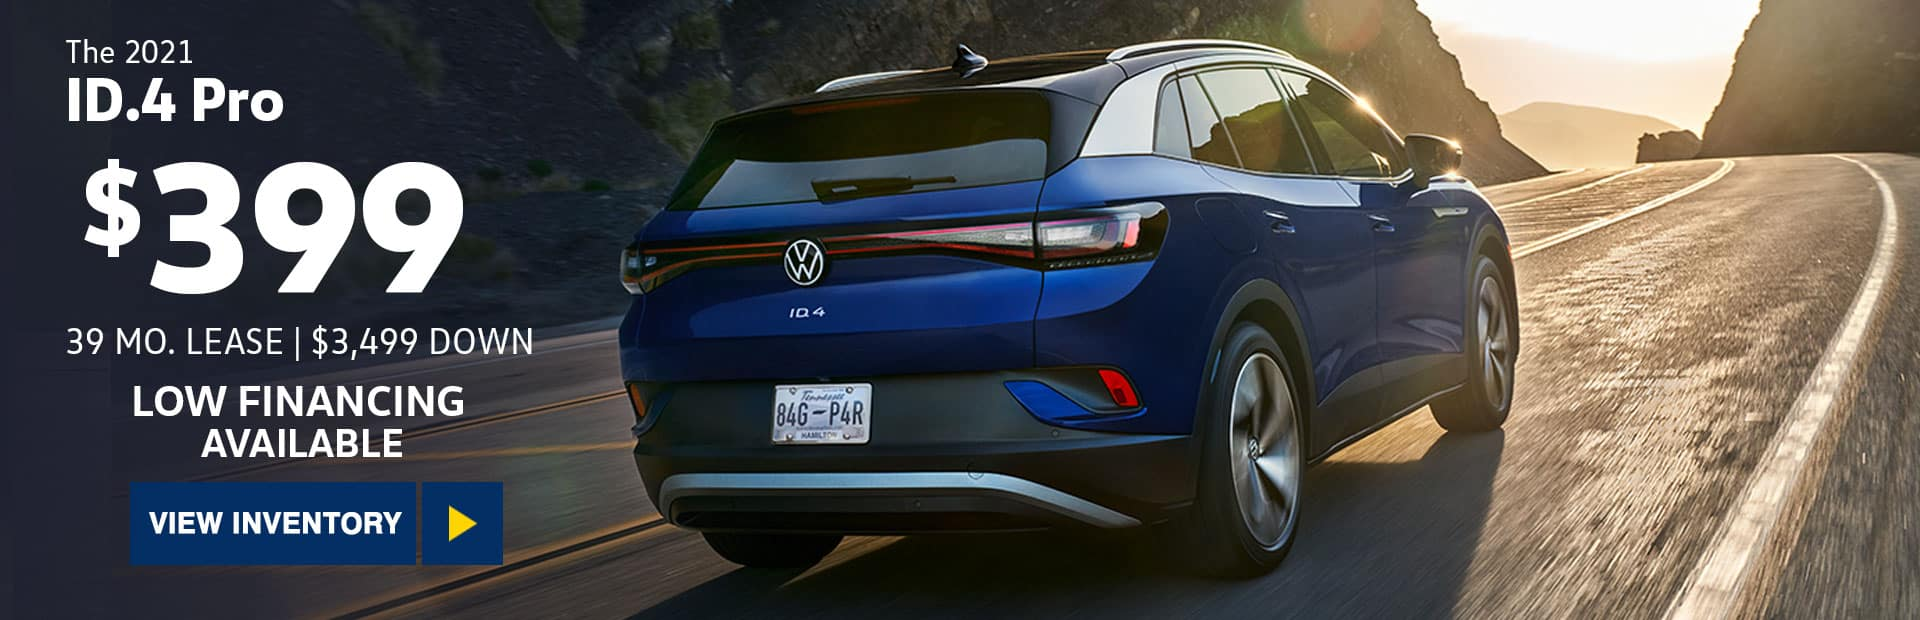 new 2021 vw id.4 lease special for sale in glendale california